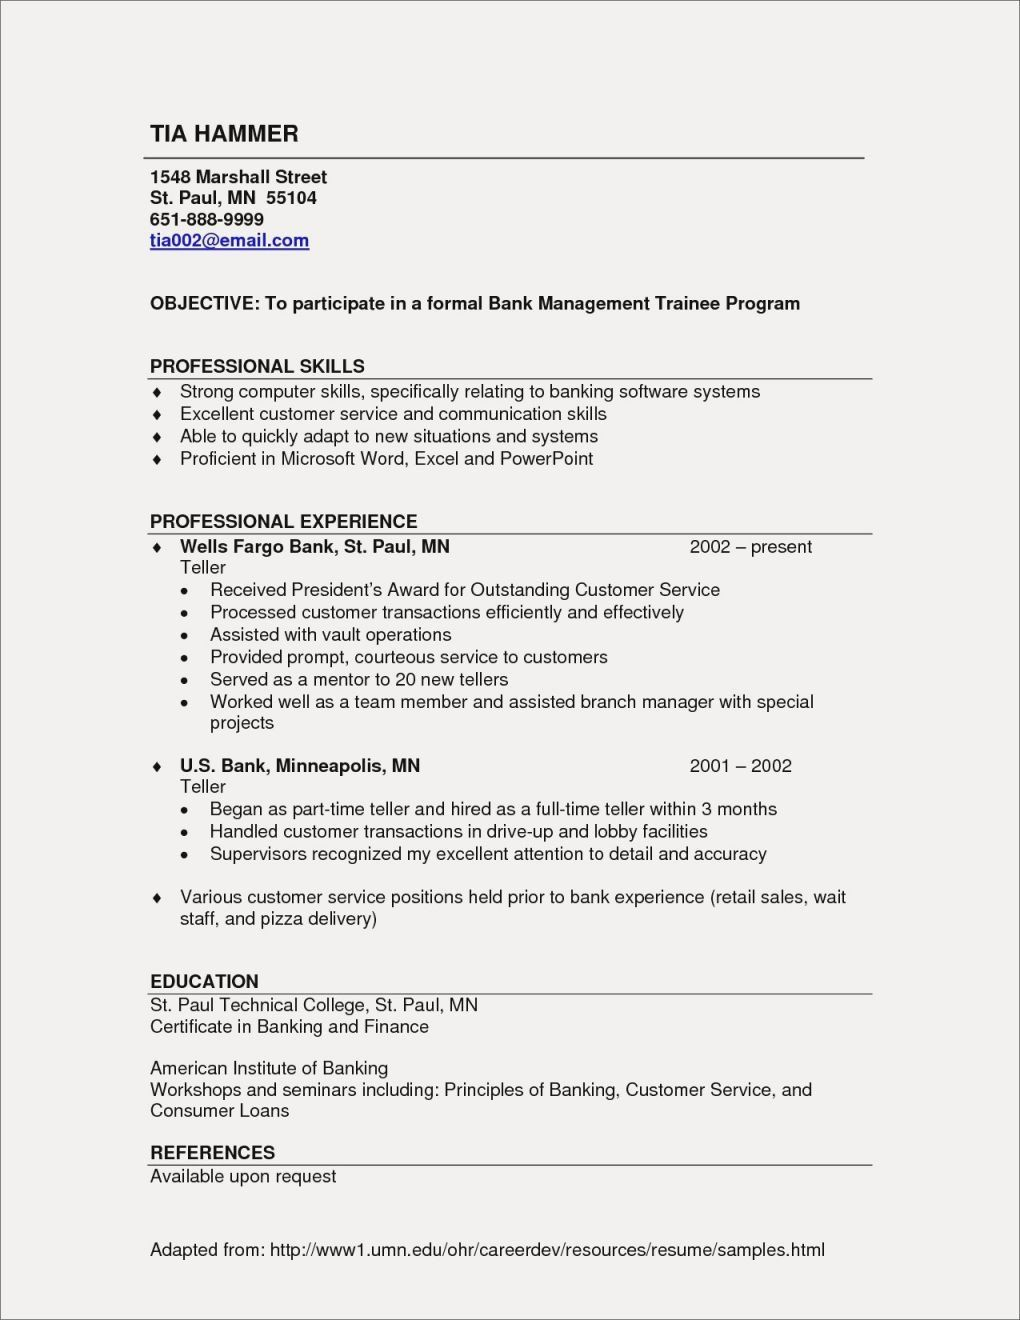 Listing Certifications On Resume 25 New Listing Skills Resume Example Good Resume Examples Resume Objective Examples Cover Letter For Resume